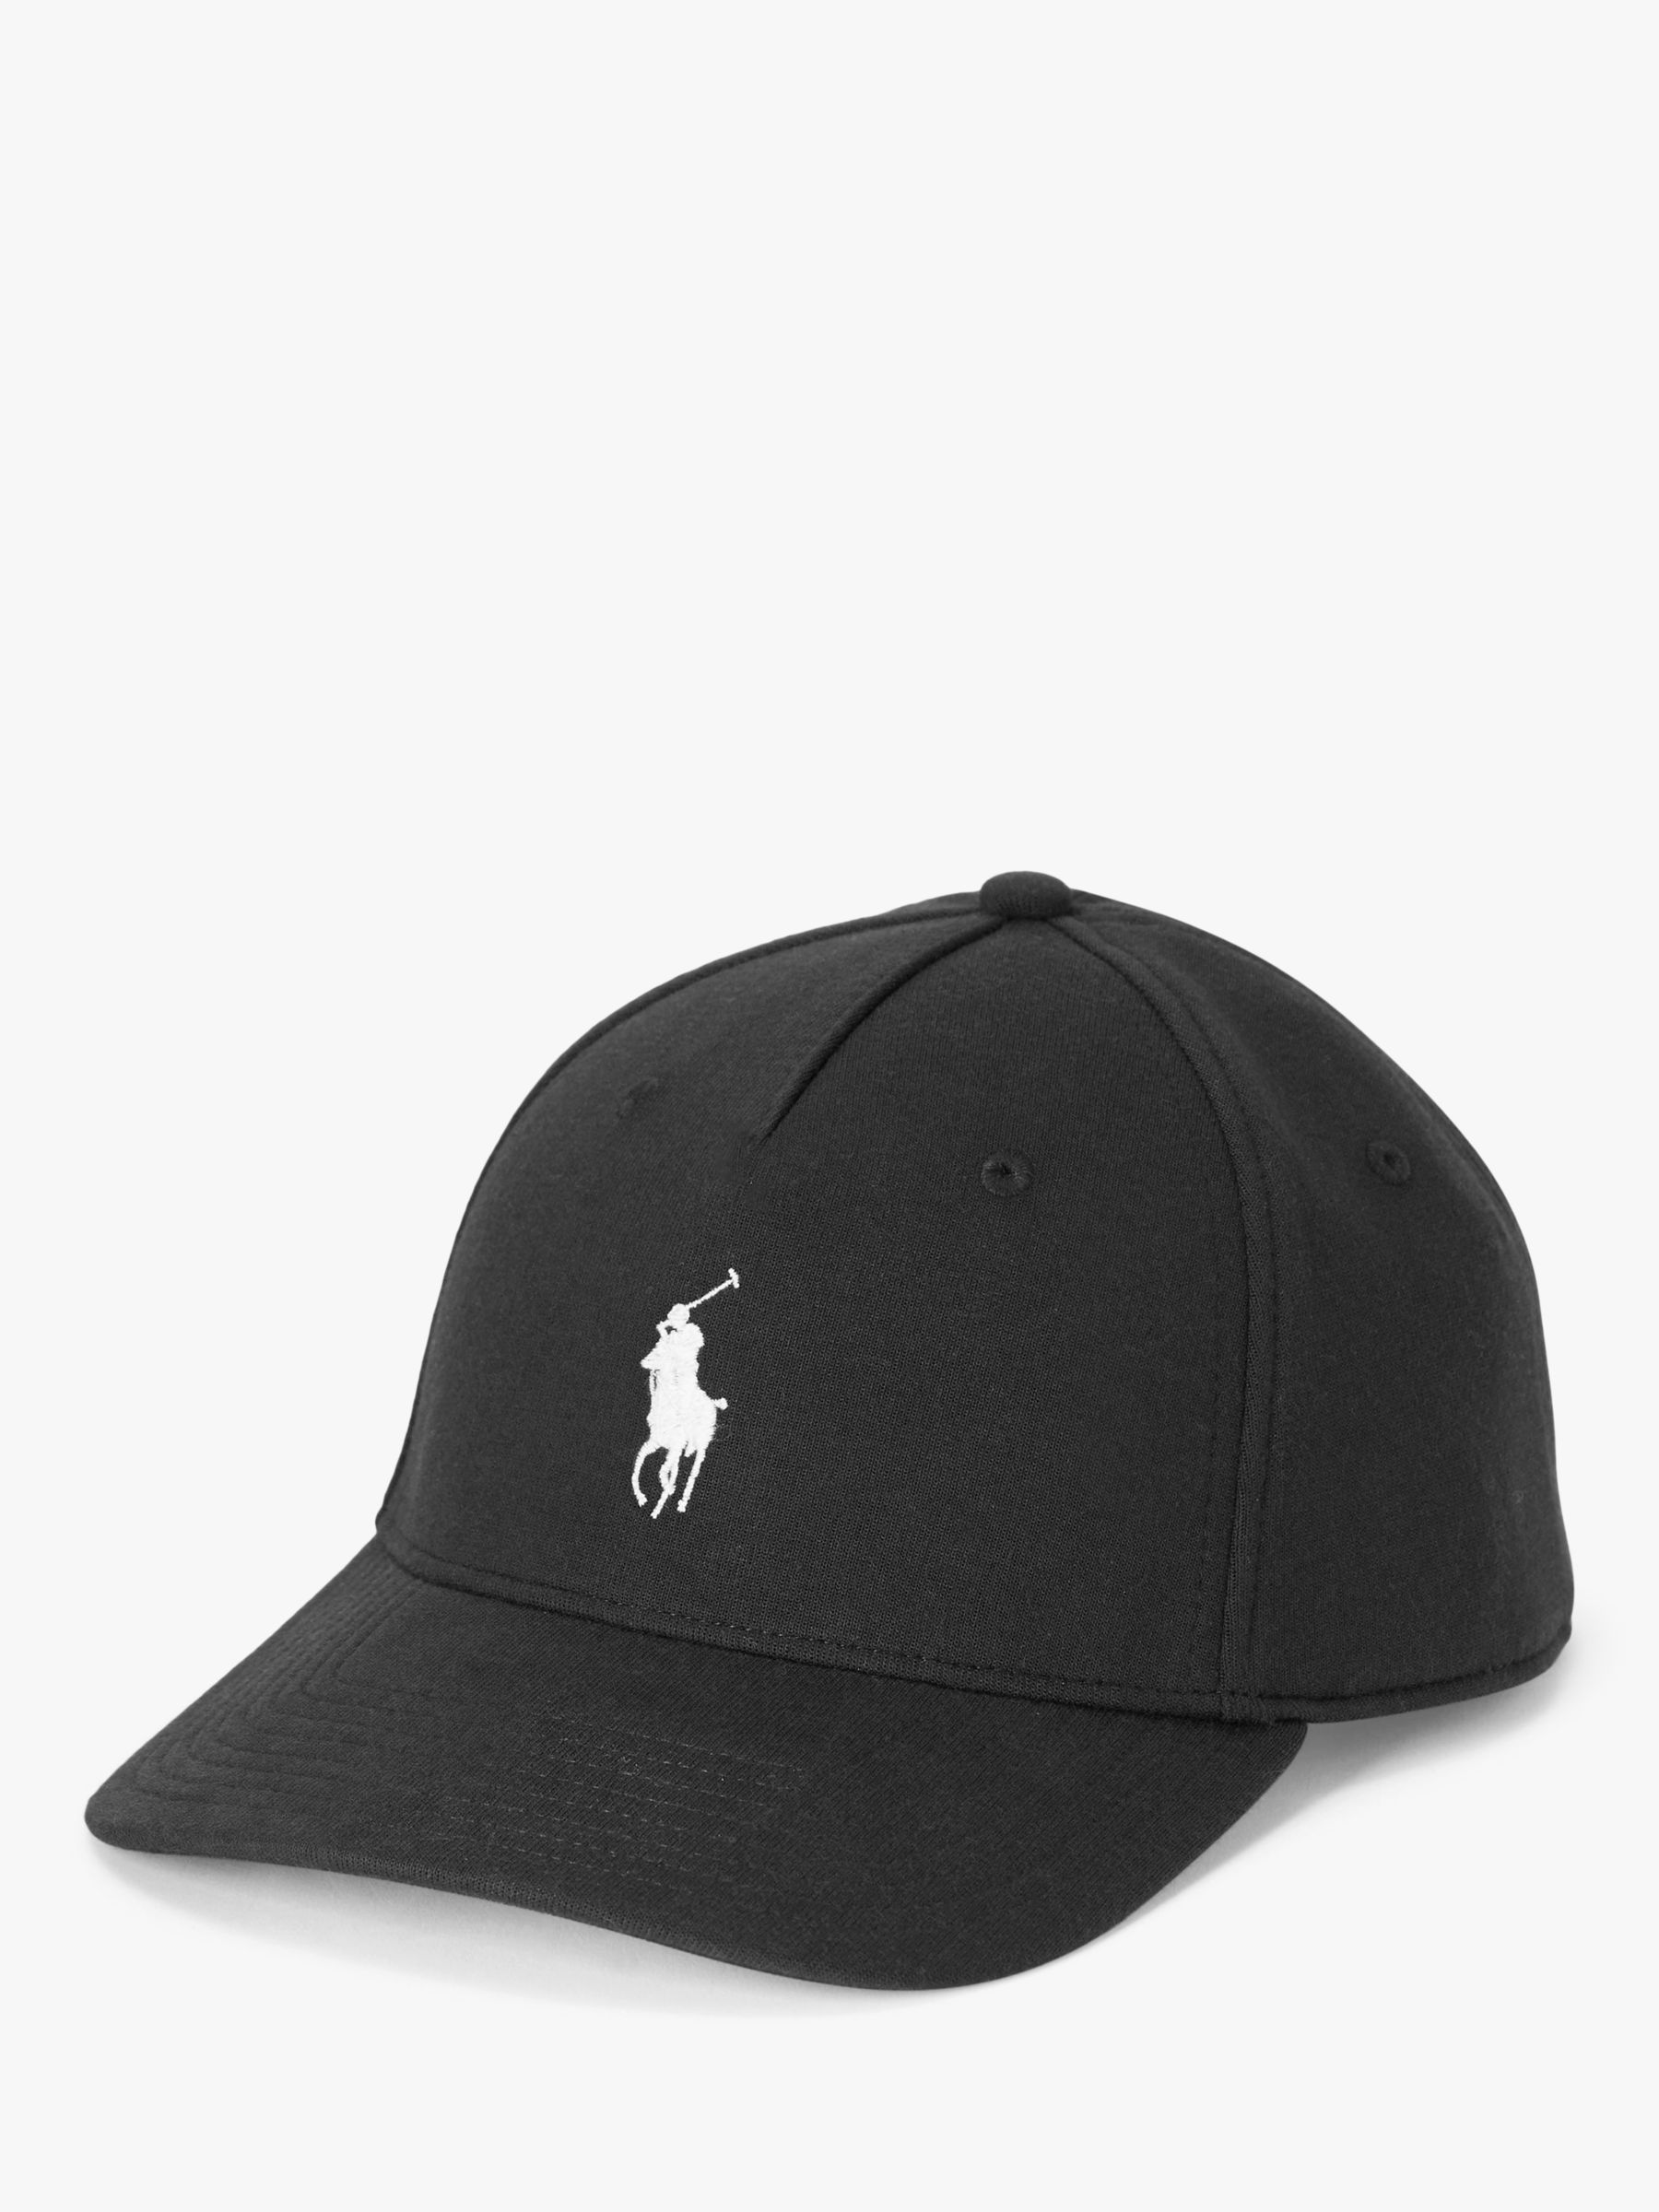 Polo Ralph Lauren Double Knit Jacquard Baseball Cap, One Size, Black